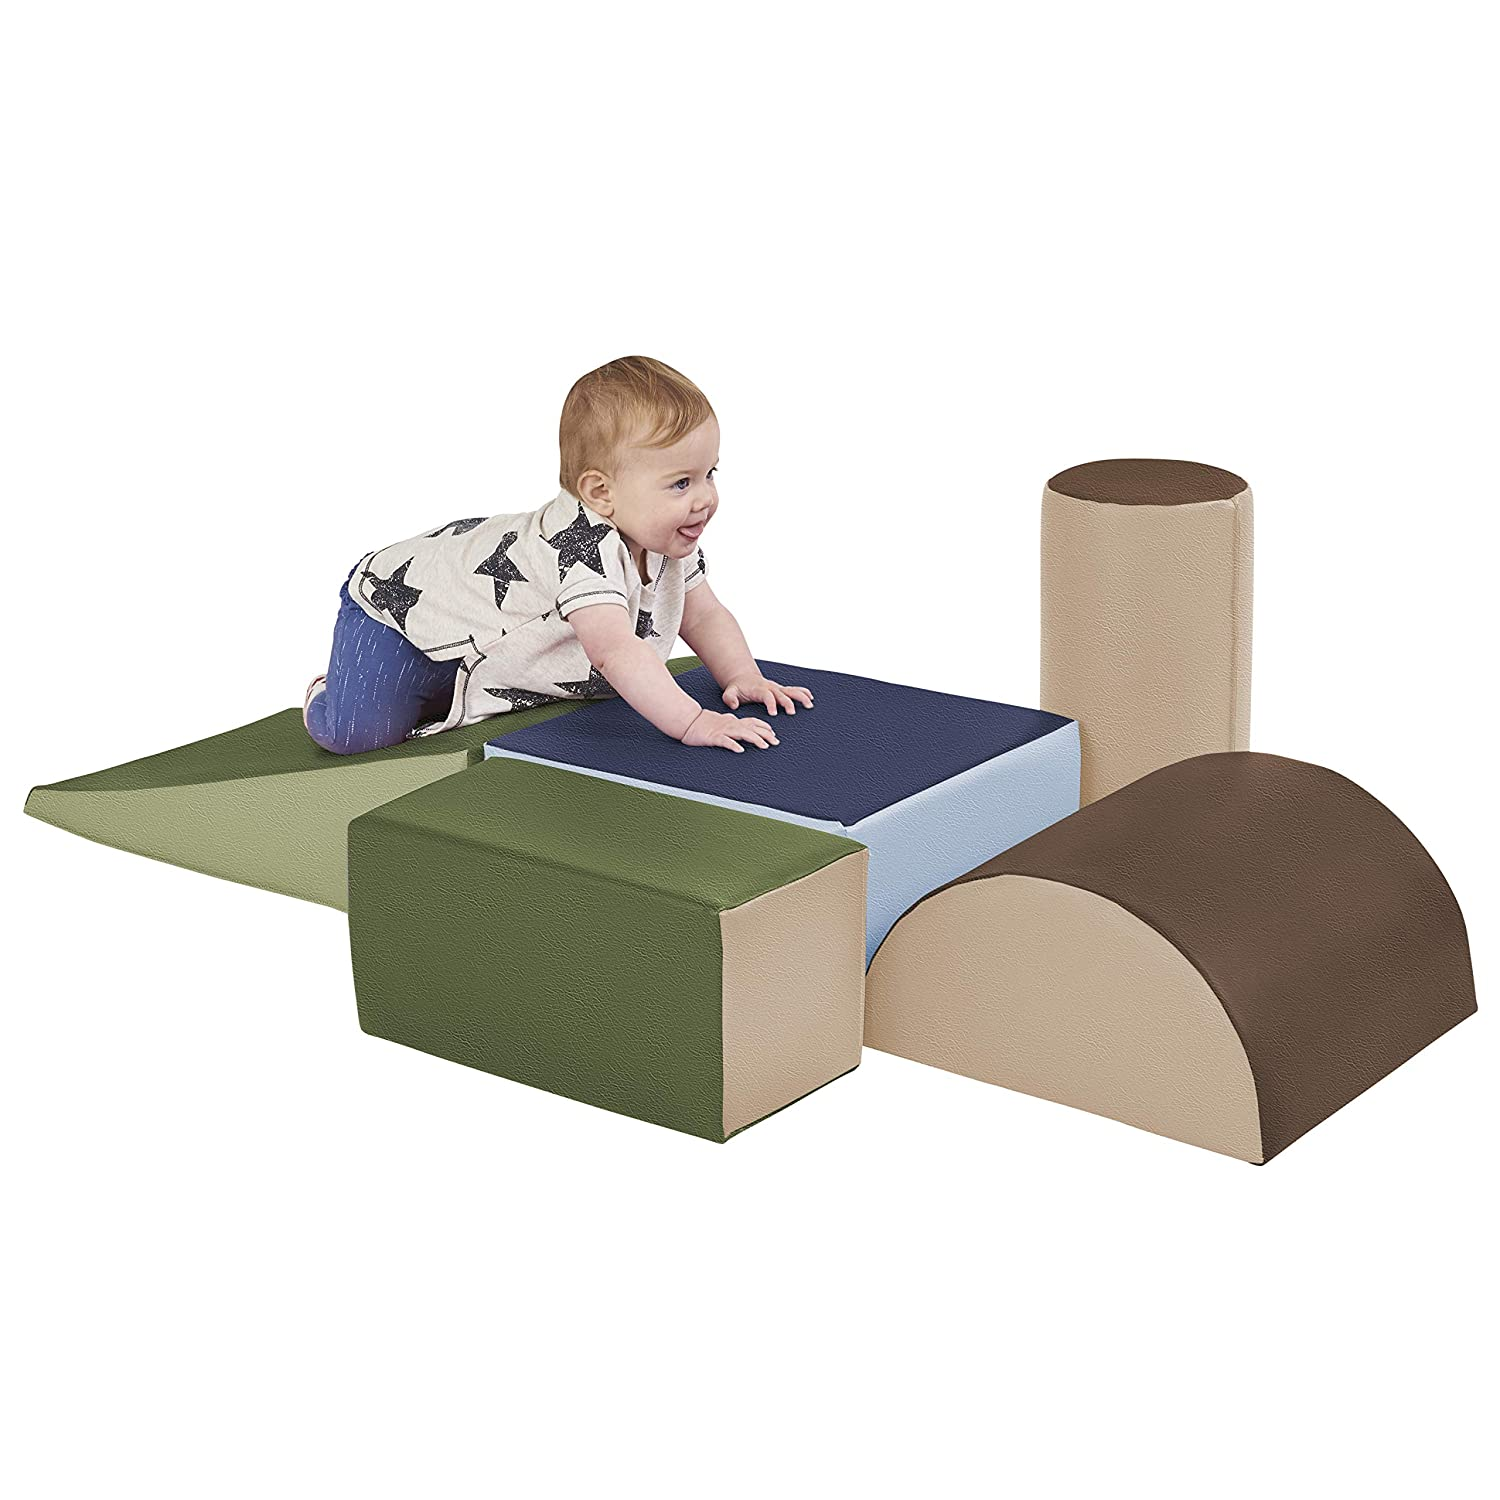 Top 10 Best Toddler Climbing Toys (2020 Reviews & Buying Guide) 4